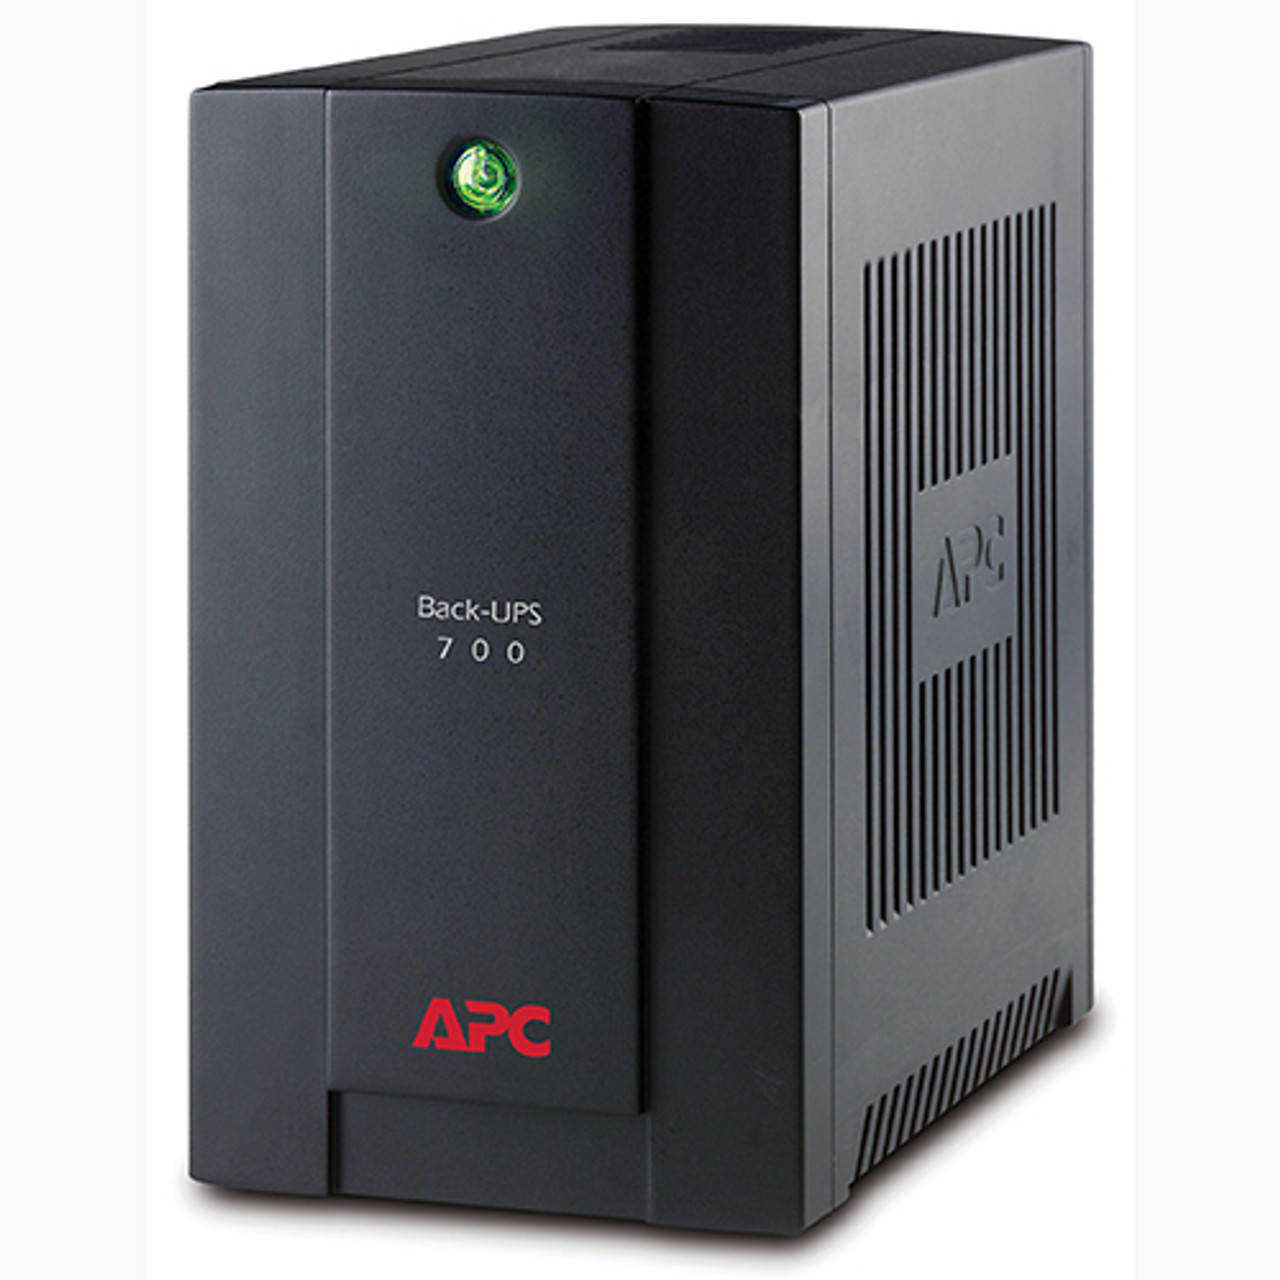 Product image for APC 700VA/230V Line Interactive Sinewave AVR Back-UPS | CX Computer Superstore